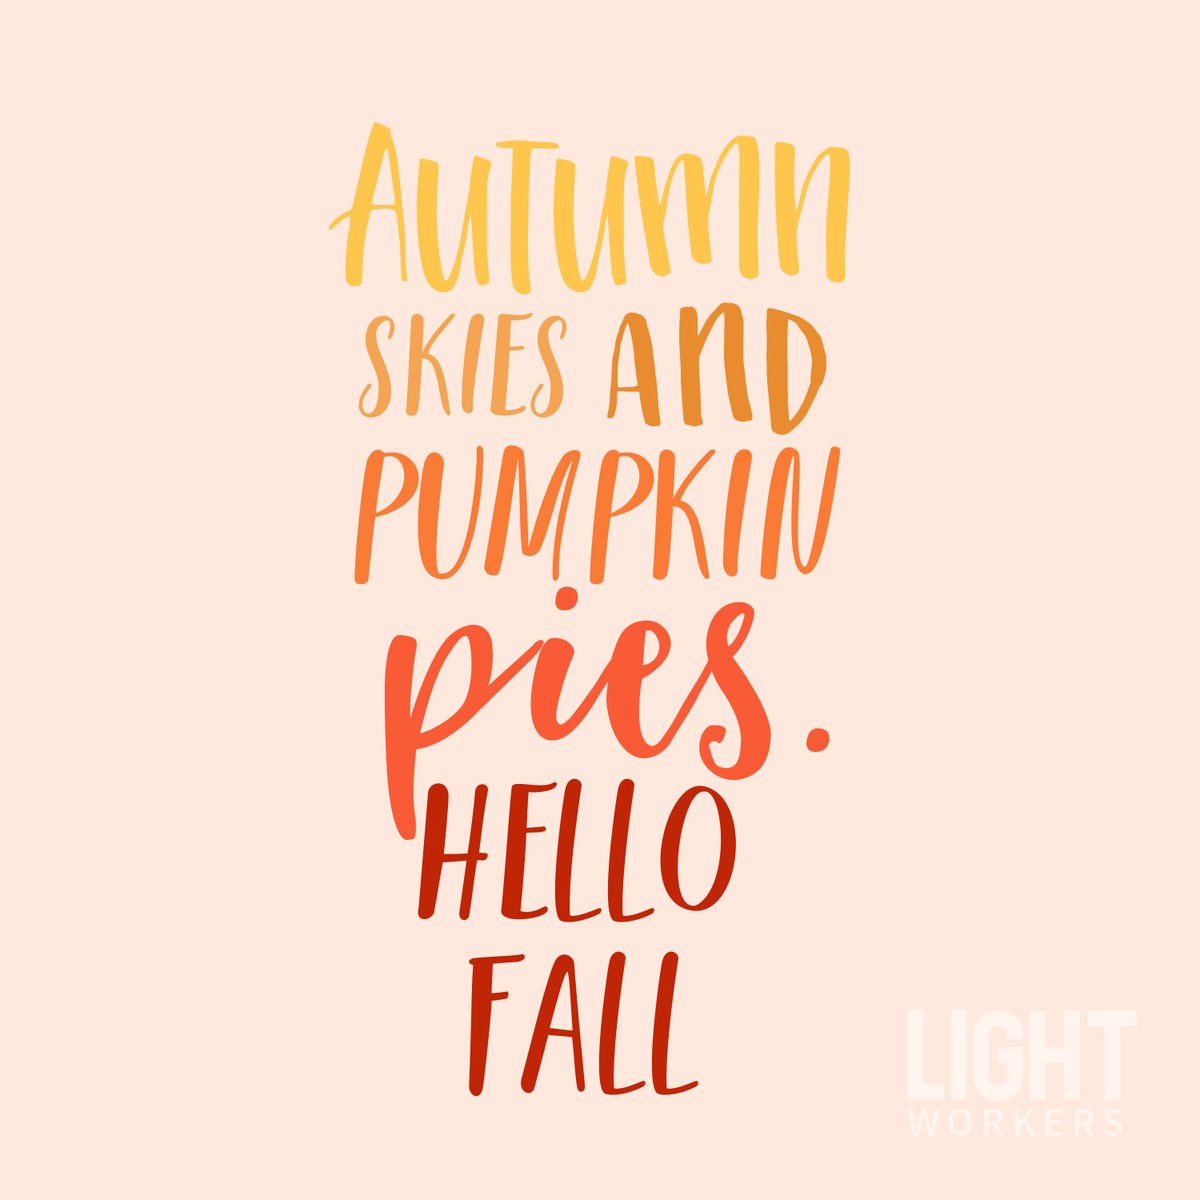 Pumpkin Spiced Everything Please! We hope everyone has a blessed and safe fall. 🍂🧡